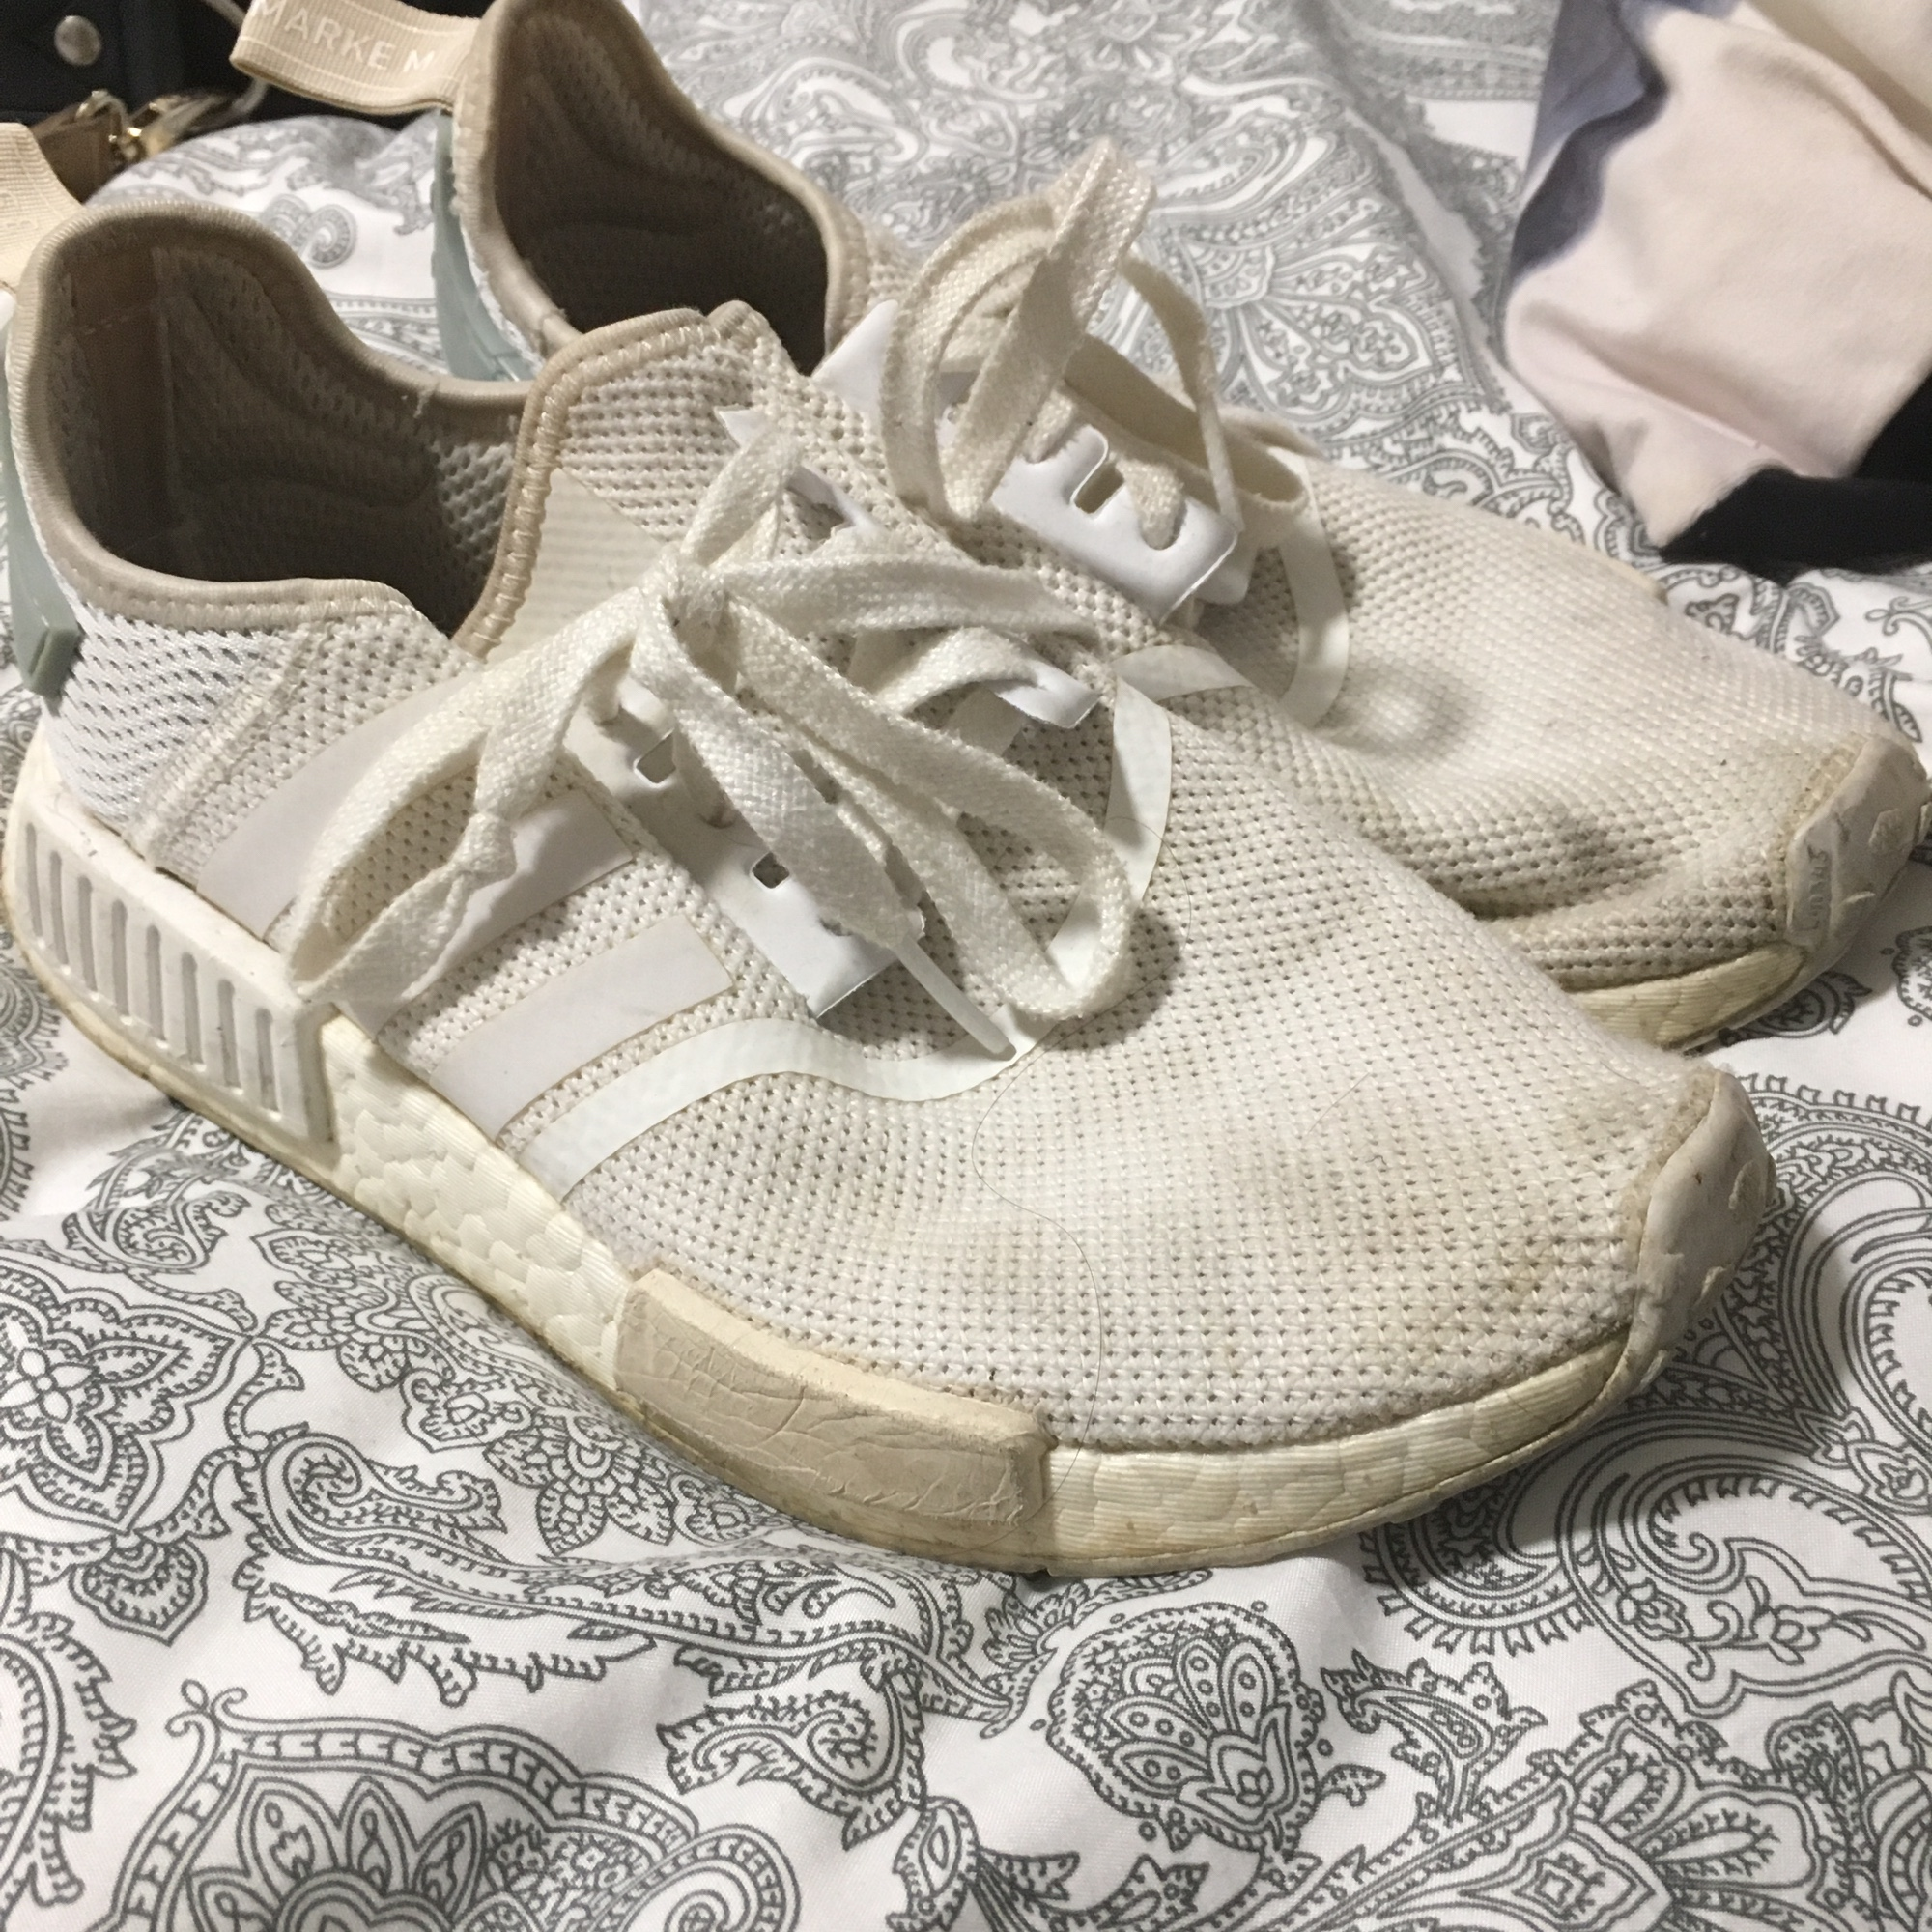 Adidas NMD's White Can be washed in